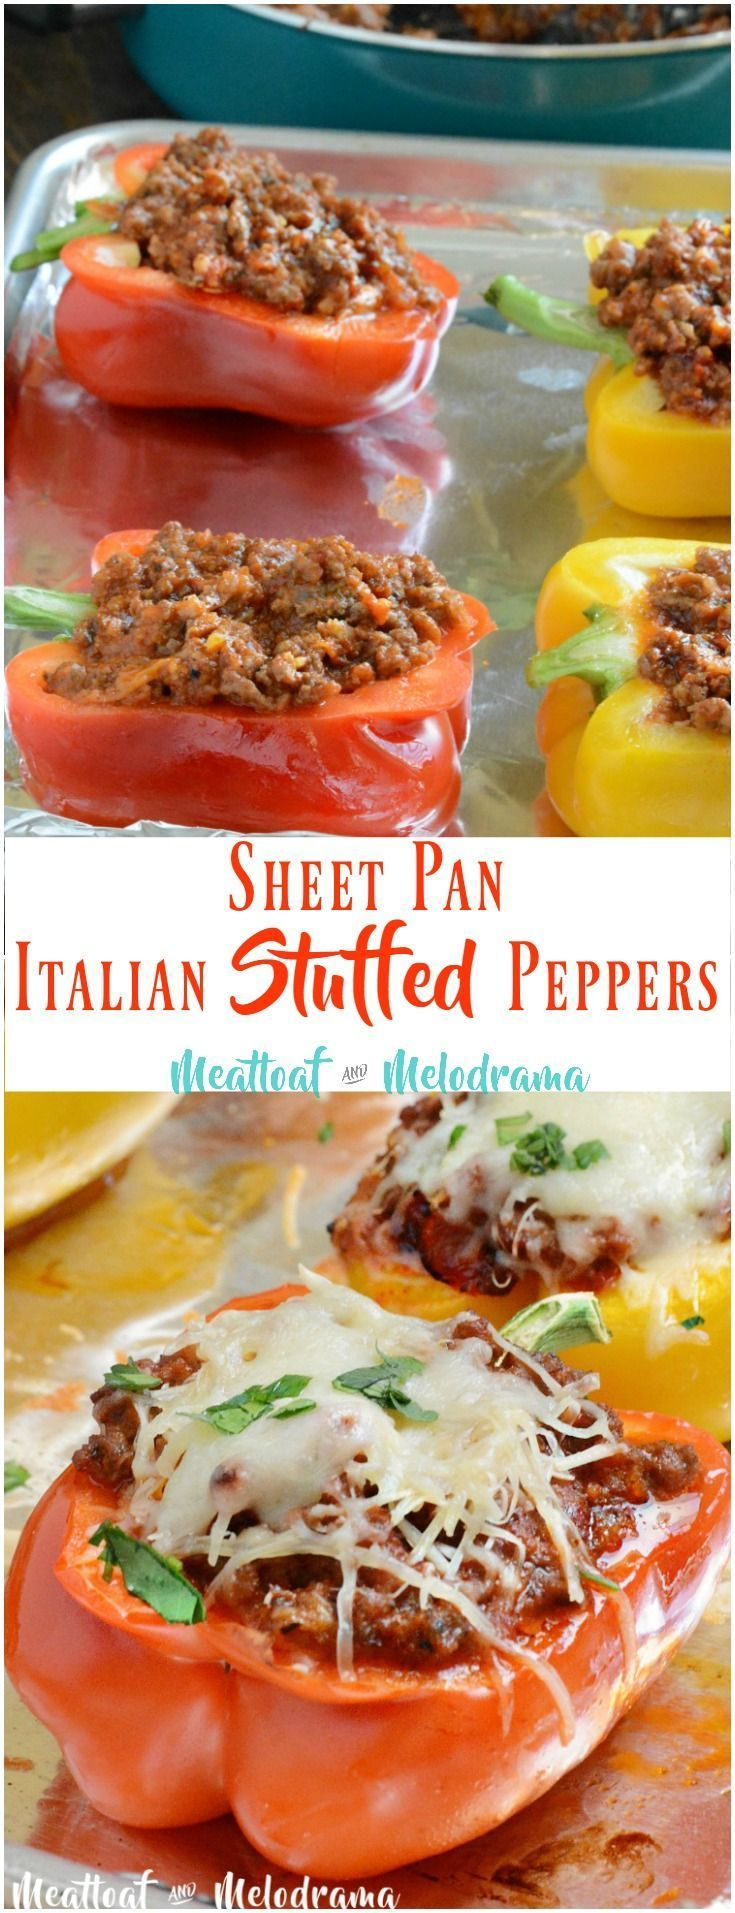 Sheet Pan Italian Stuffed Peppers - This easy dinner is gluten free, low carb and takes just 30 minutes to cook. Plus clean up is easy too! from Meatloaf and Melodrama